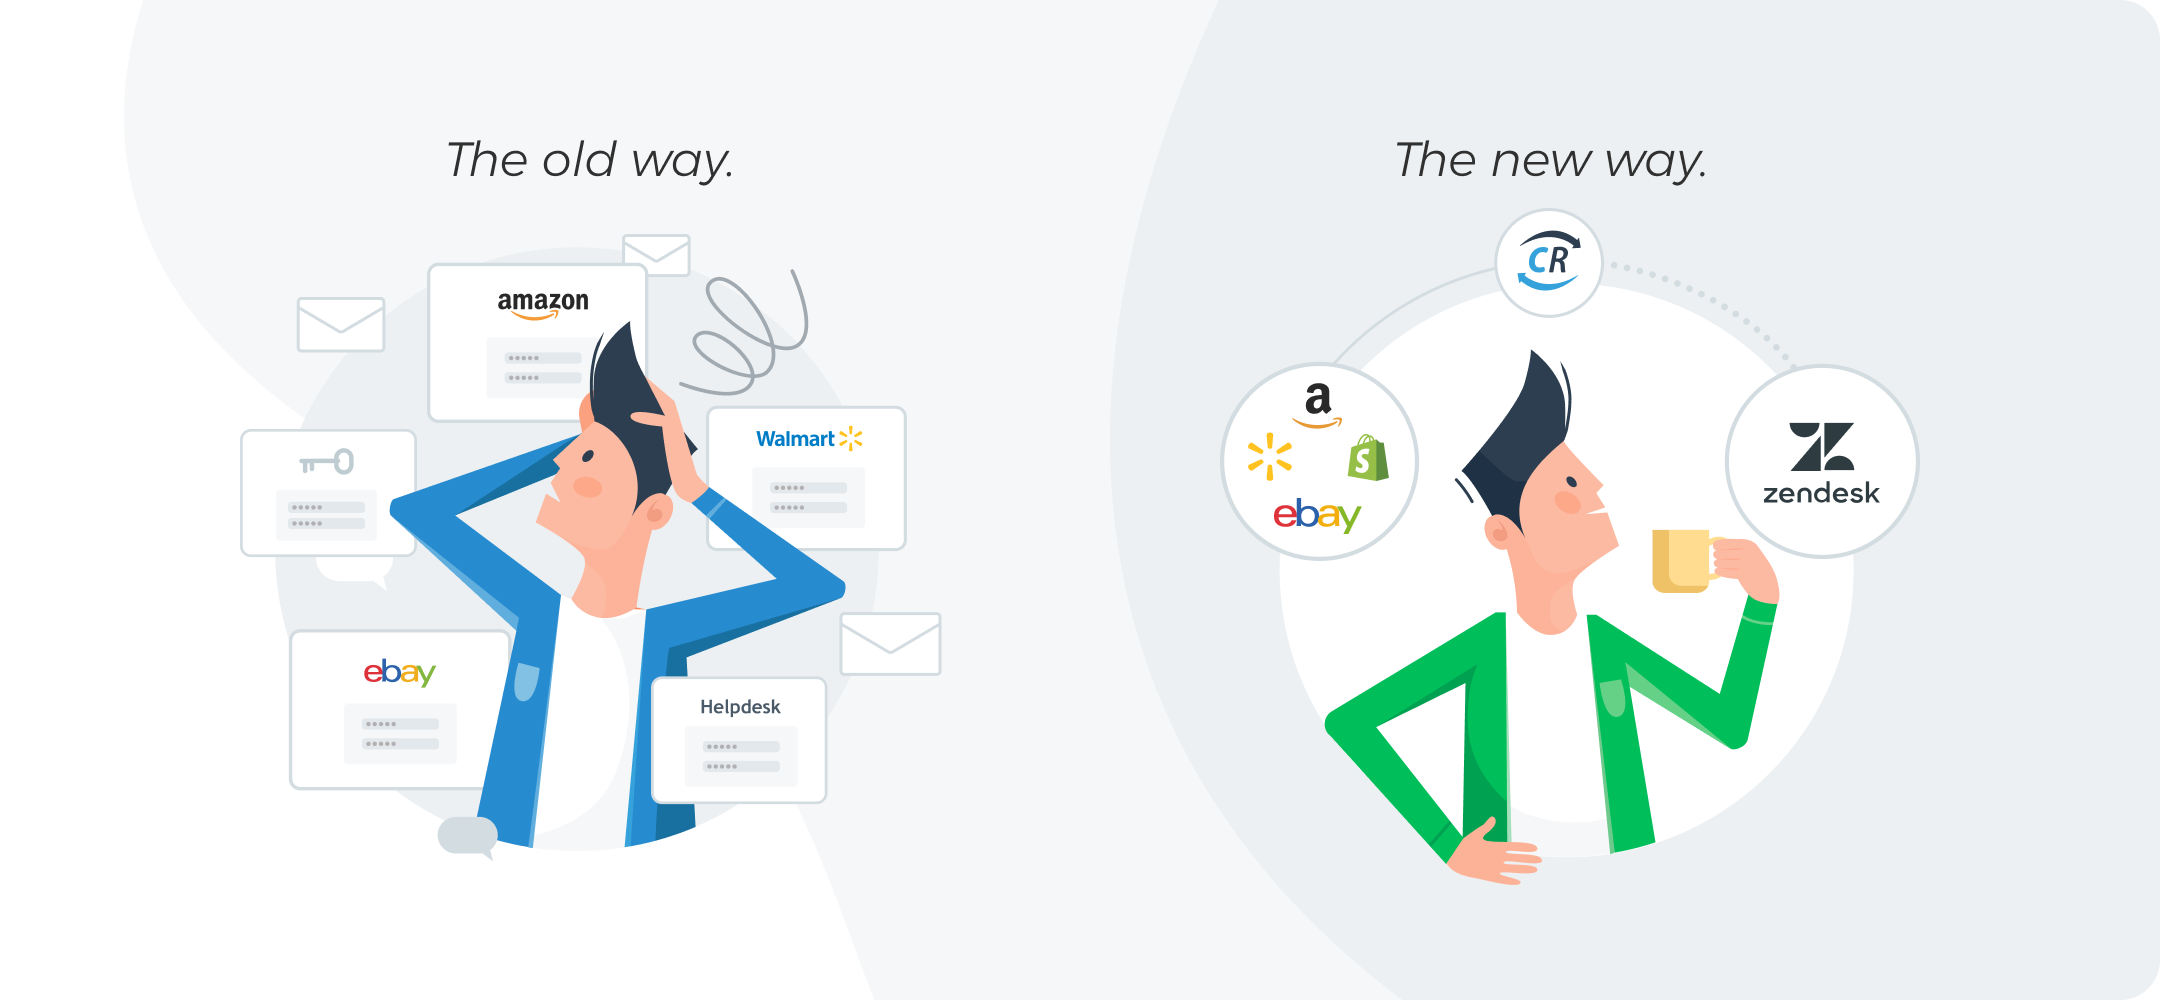 ChannelReply for Zendesk with eBay, Amazon, Walmart and Shopify